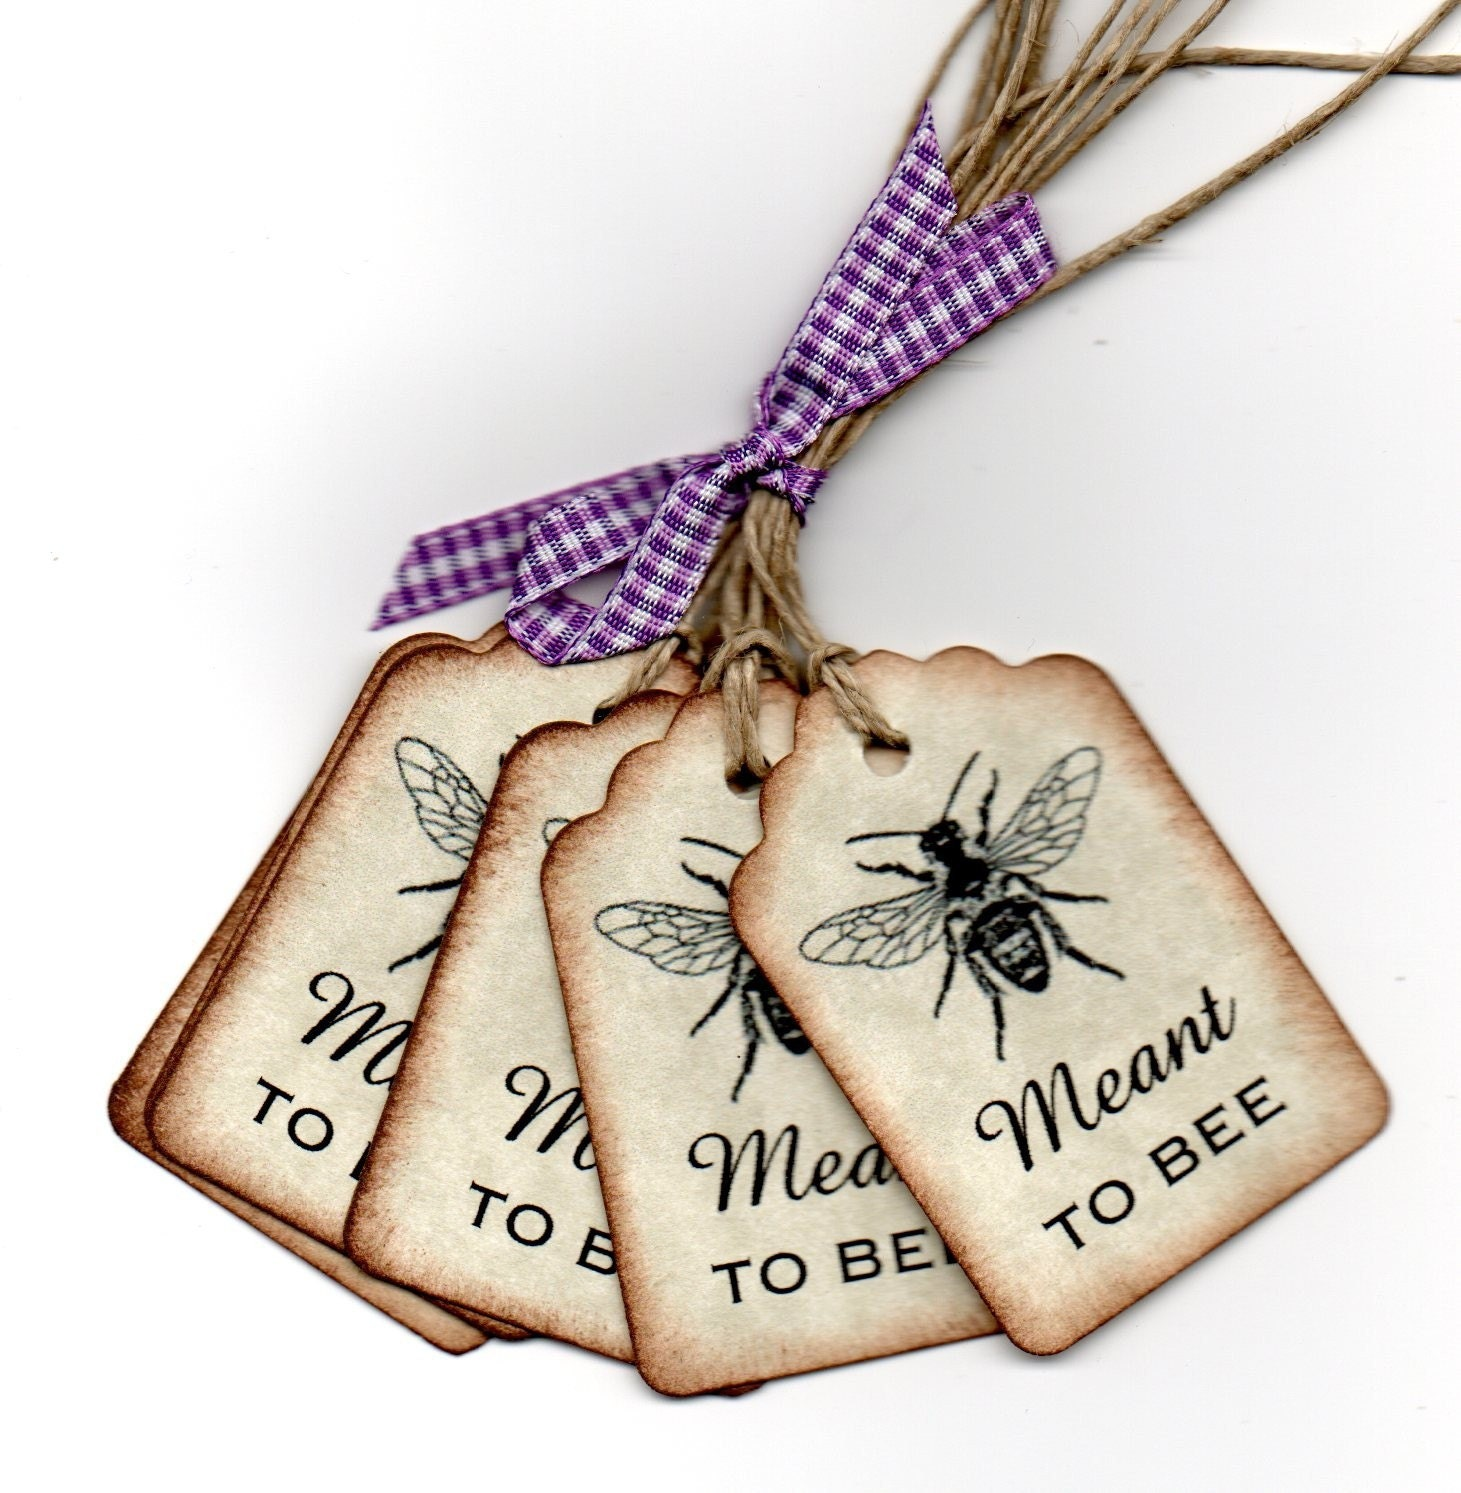 50 wedding favor tags meant to bee honey jar by for Honey bee wedding favors